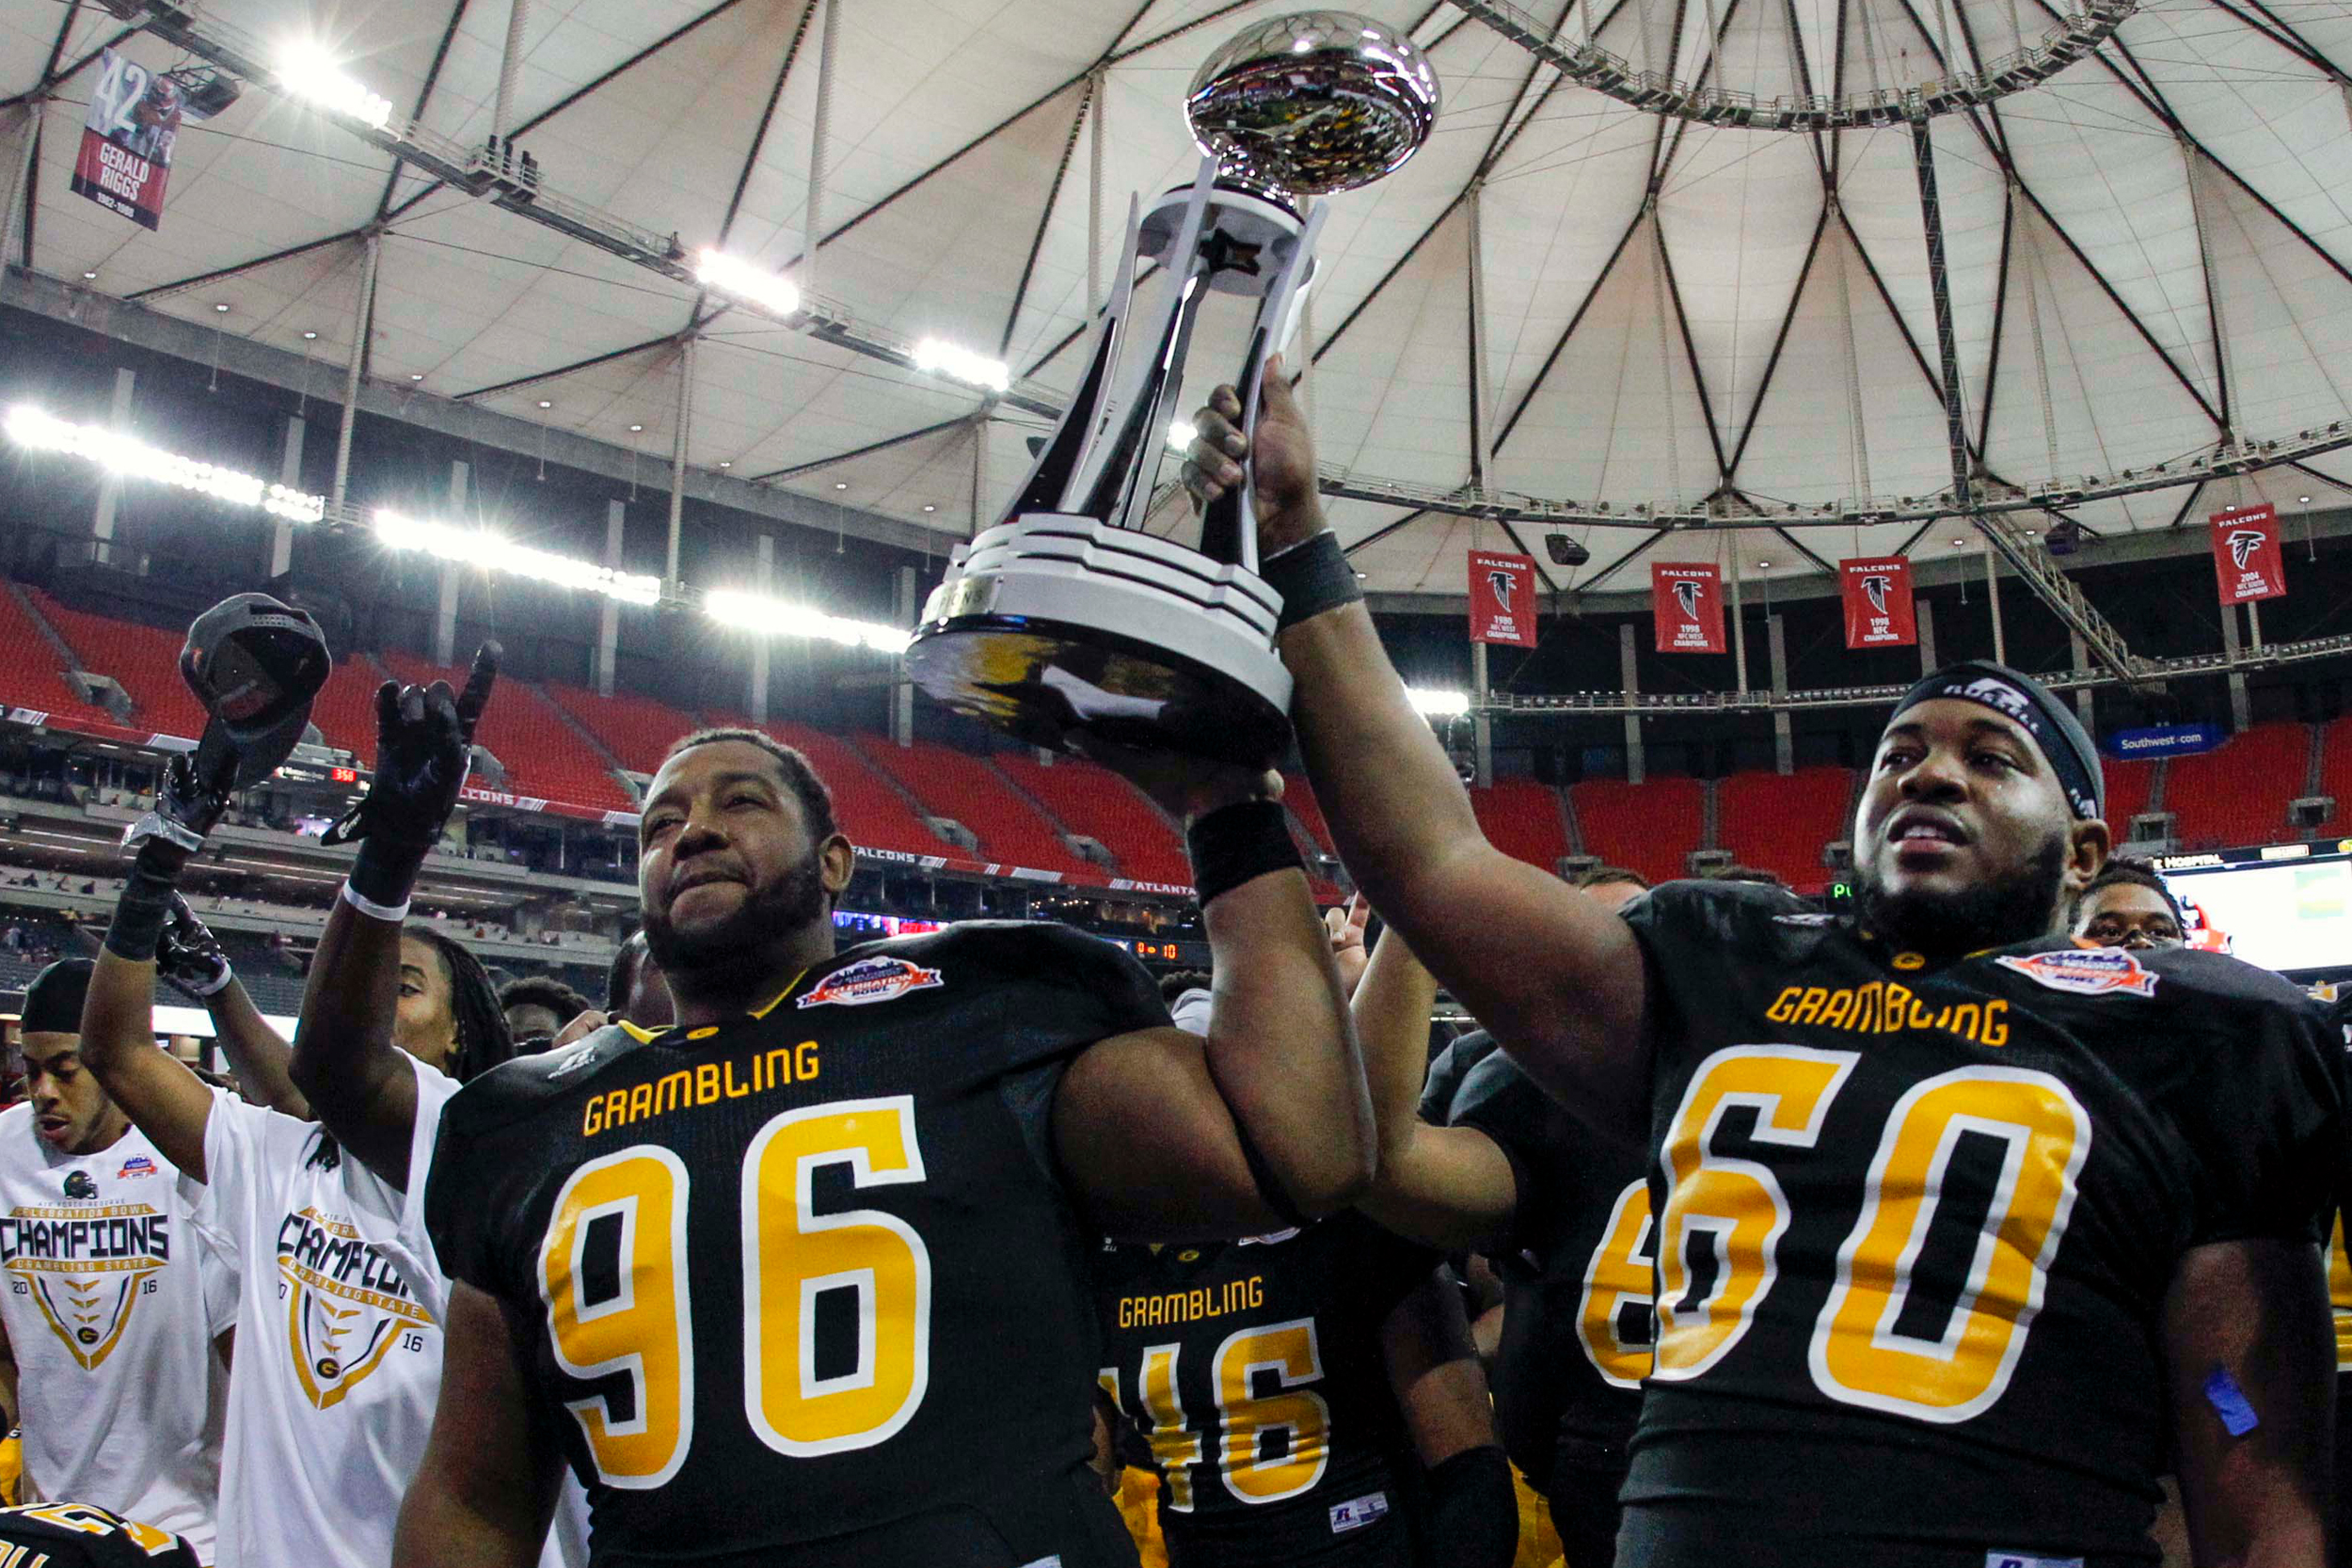 Grambling State Tigers defensive lineman DeVaughn Madise (96) and offensive lineman Terry Boyd (60) lift the trophy after a victory against the North Carolina Central Eagles in the Celebration Bowl at the Georgia Dome. Grambling State won 10-9.